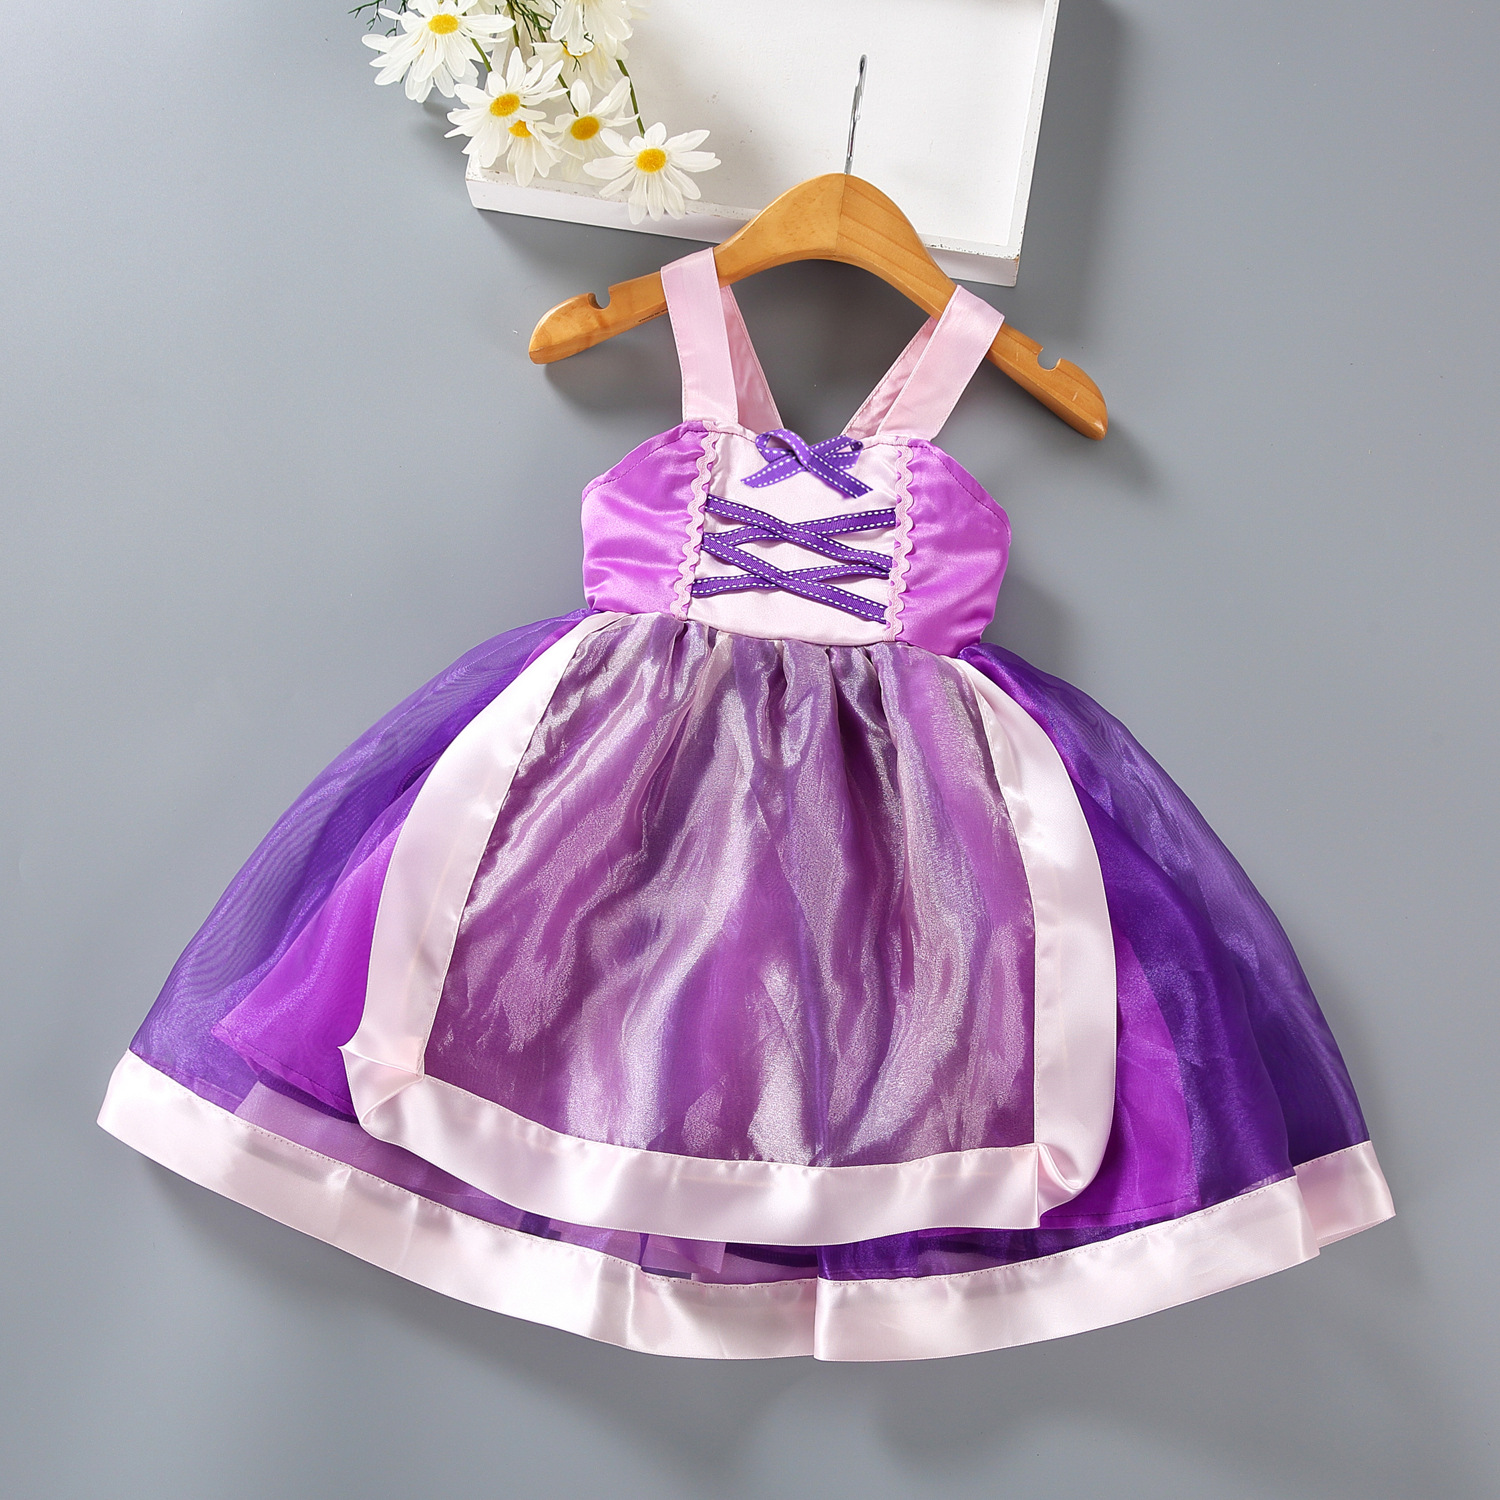 Infant Girls Christmas Snow White Princess Dresses Kids Cosplay Costume Halloween Clothes Toddler Party rapunzelDress for Girl 4